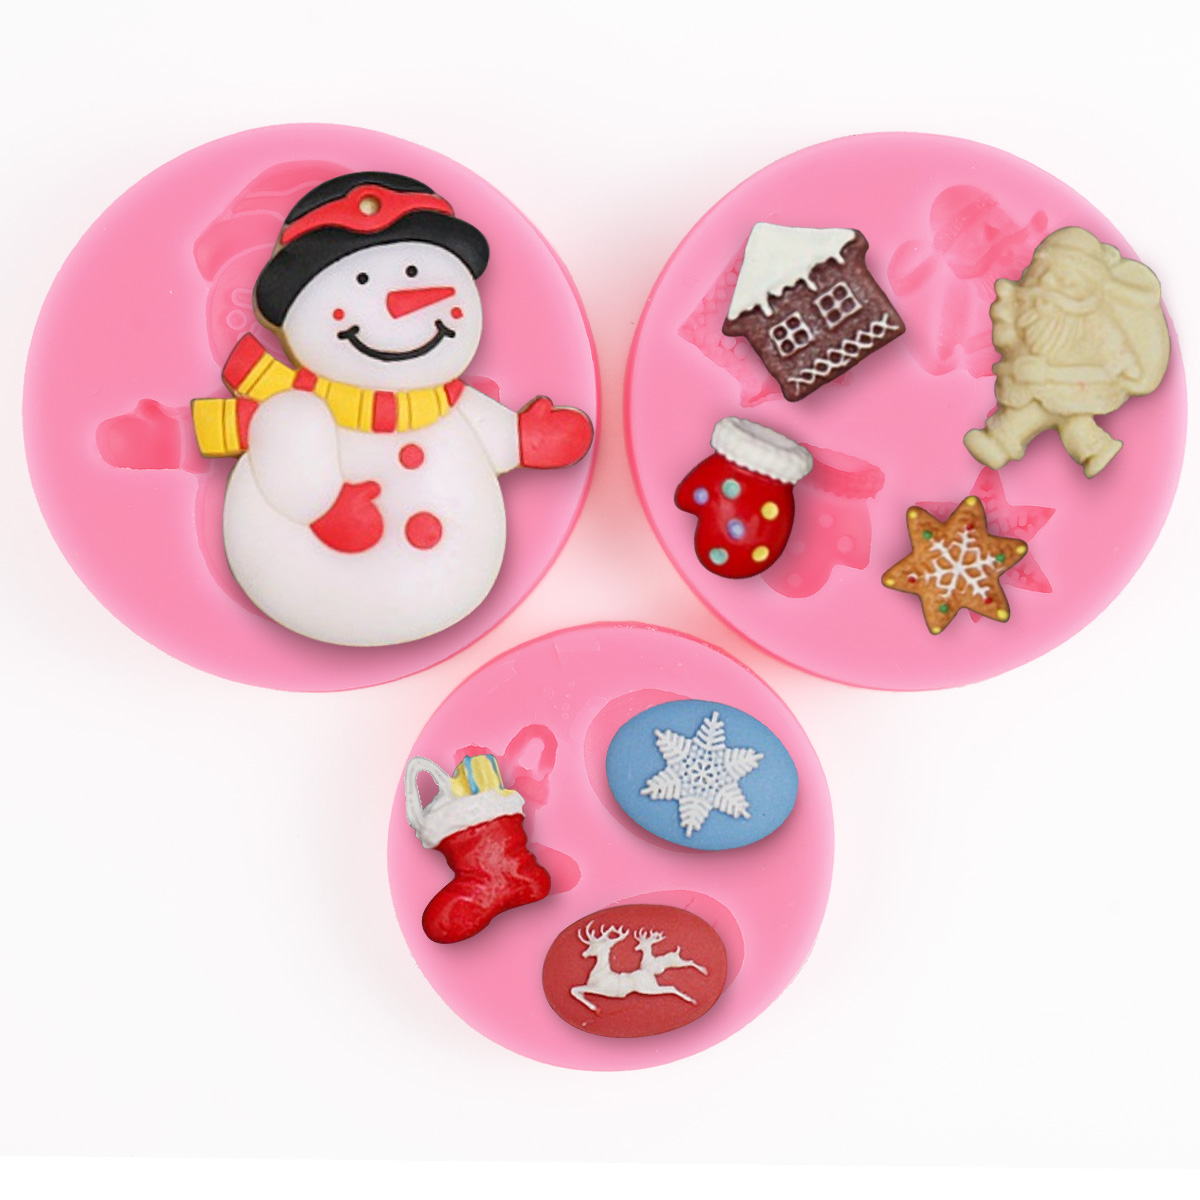 3x moule silicone bonhomme neige accessoire no l p te sucre chocolat fimo r sine ebay. Black Bedroom Furniture Sets. Home Design Ideas